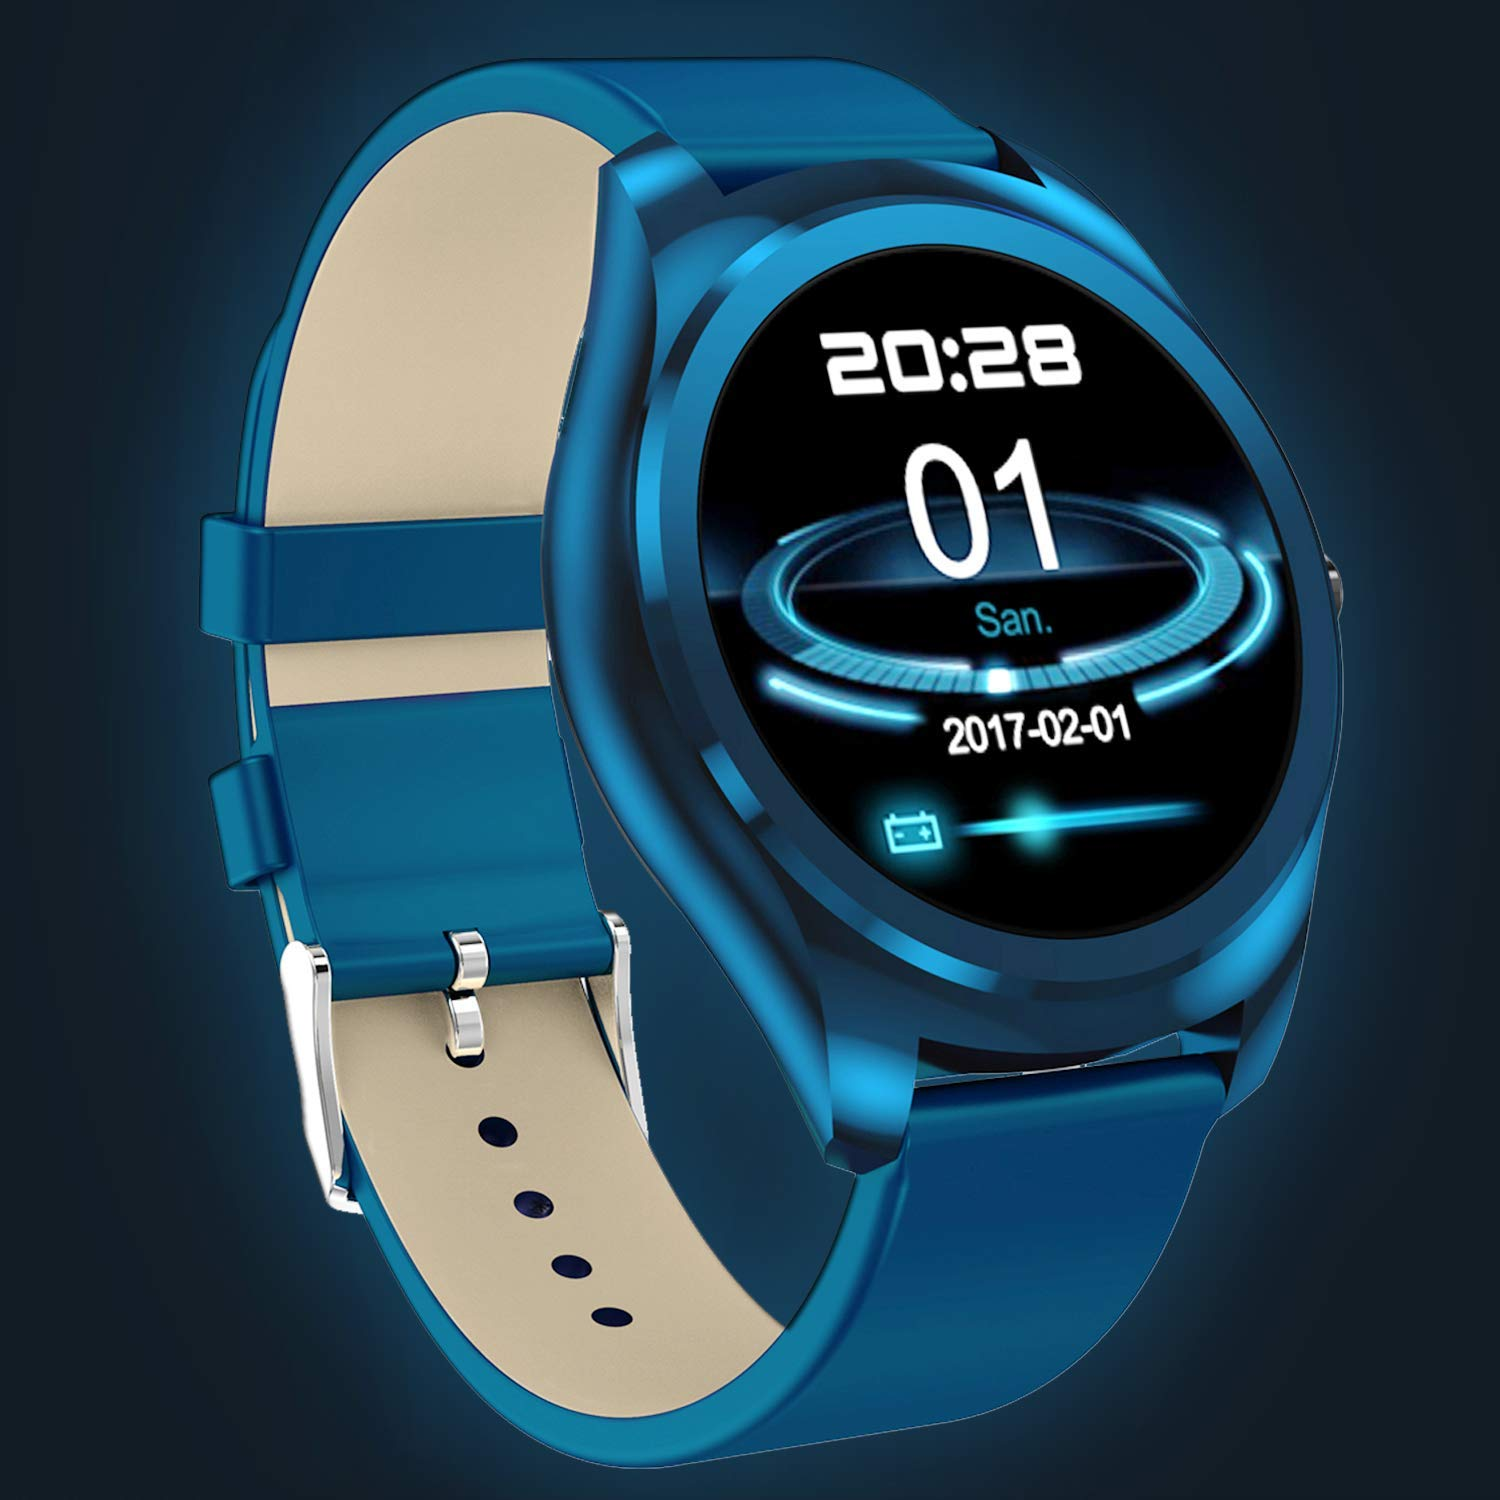 Smart Watch Waterproof IP67 Fitness Tracker with Heart Rate Monitor for Men Women Kids Run Outdoor Sport Watch with Sleep Monitor, Pedometer Calories Tracker, Sync Phone for iOS Android